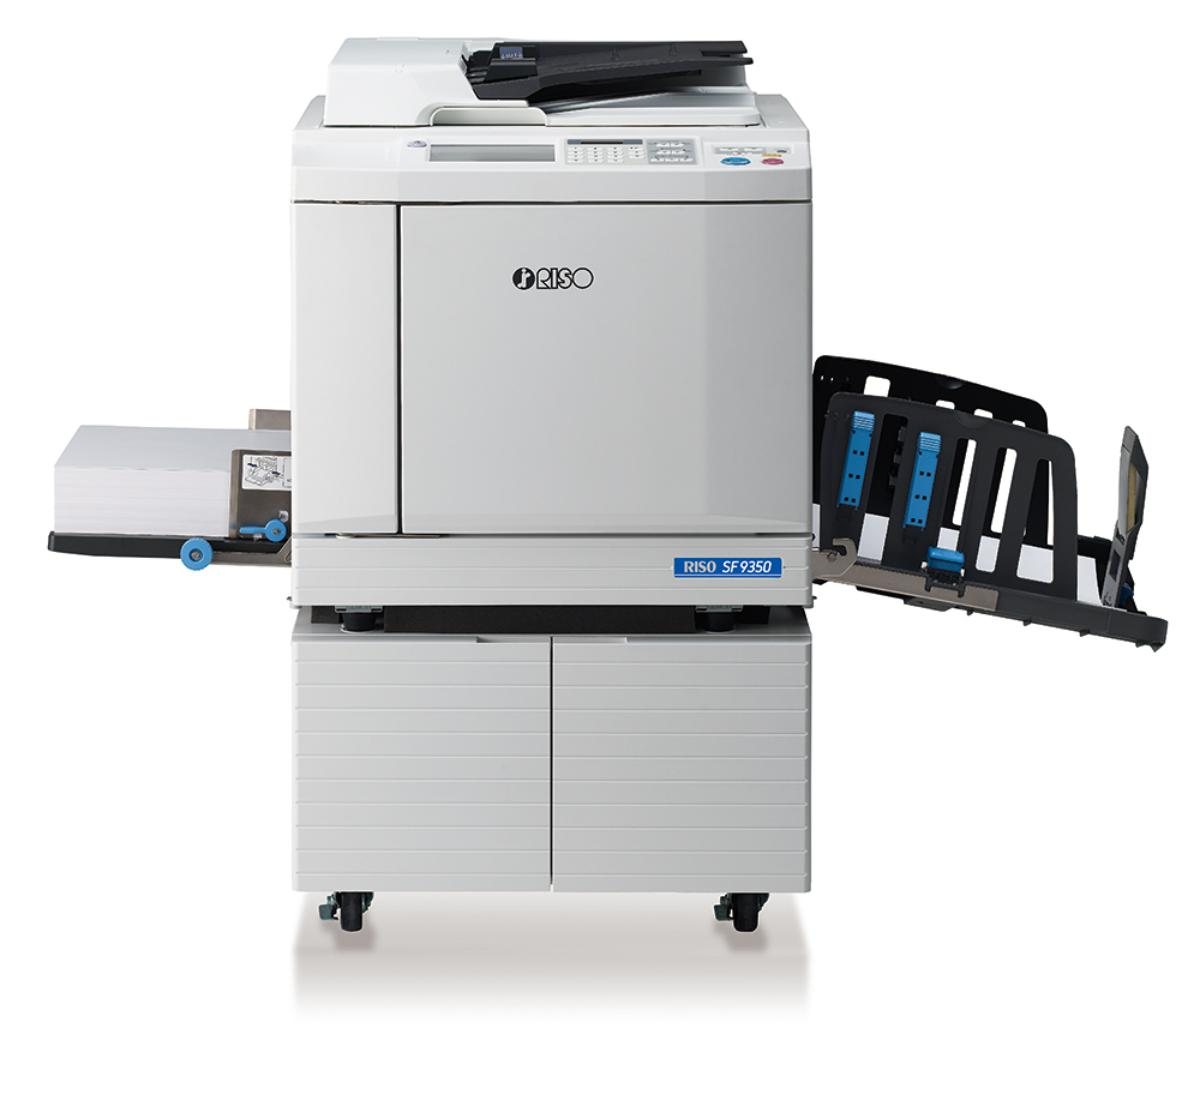 Printer - Riso SF9350 Duplicator